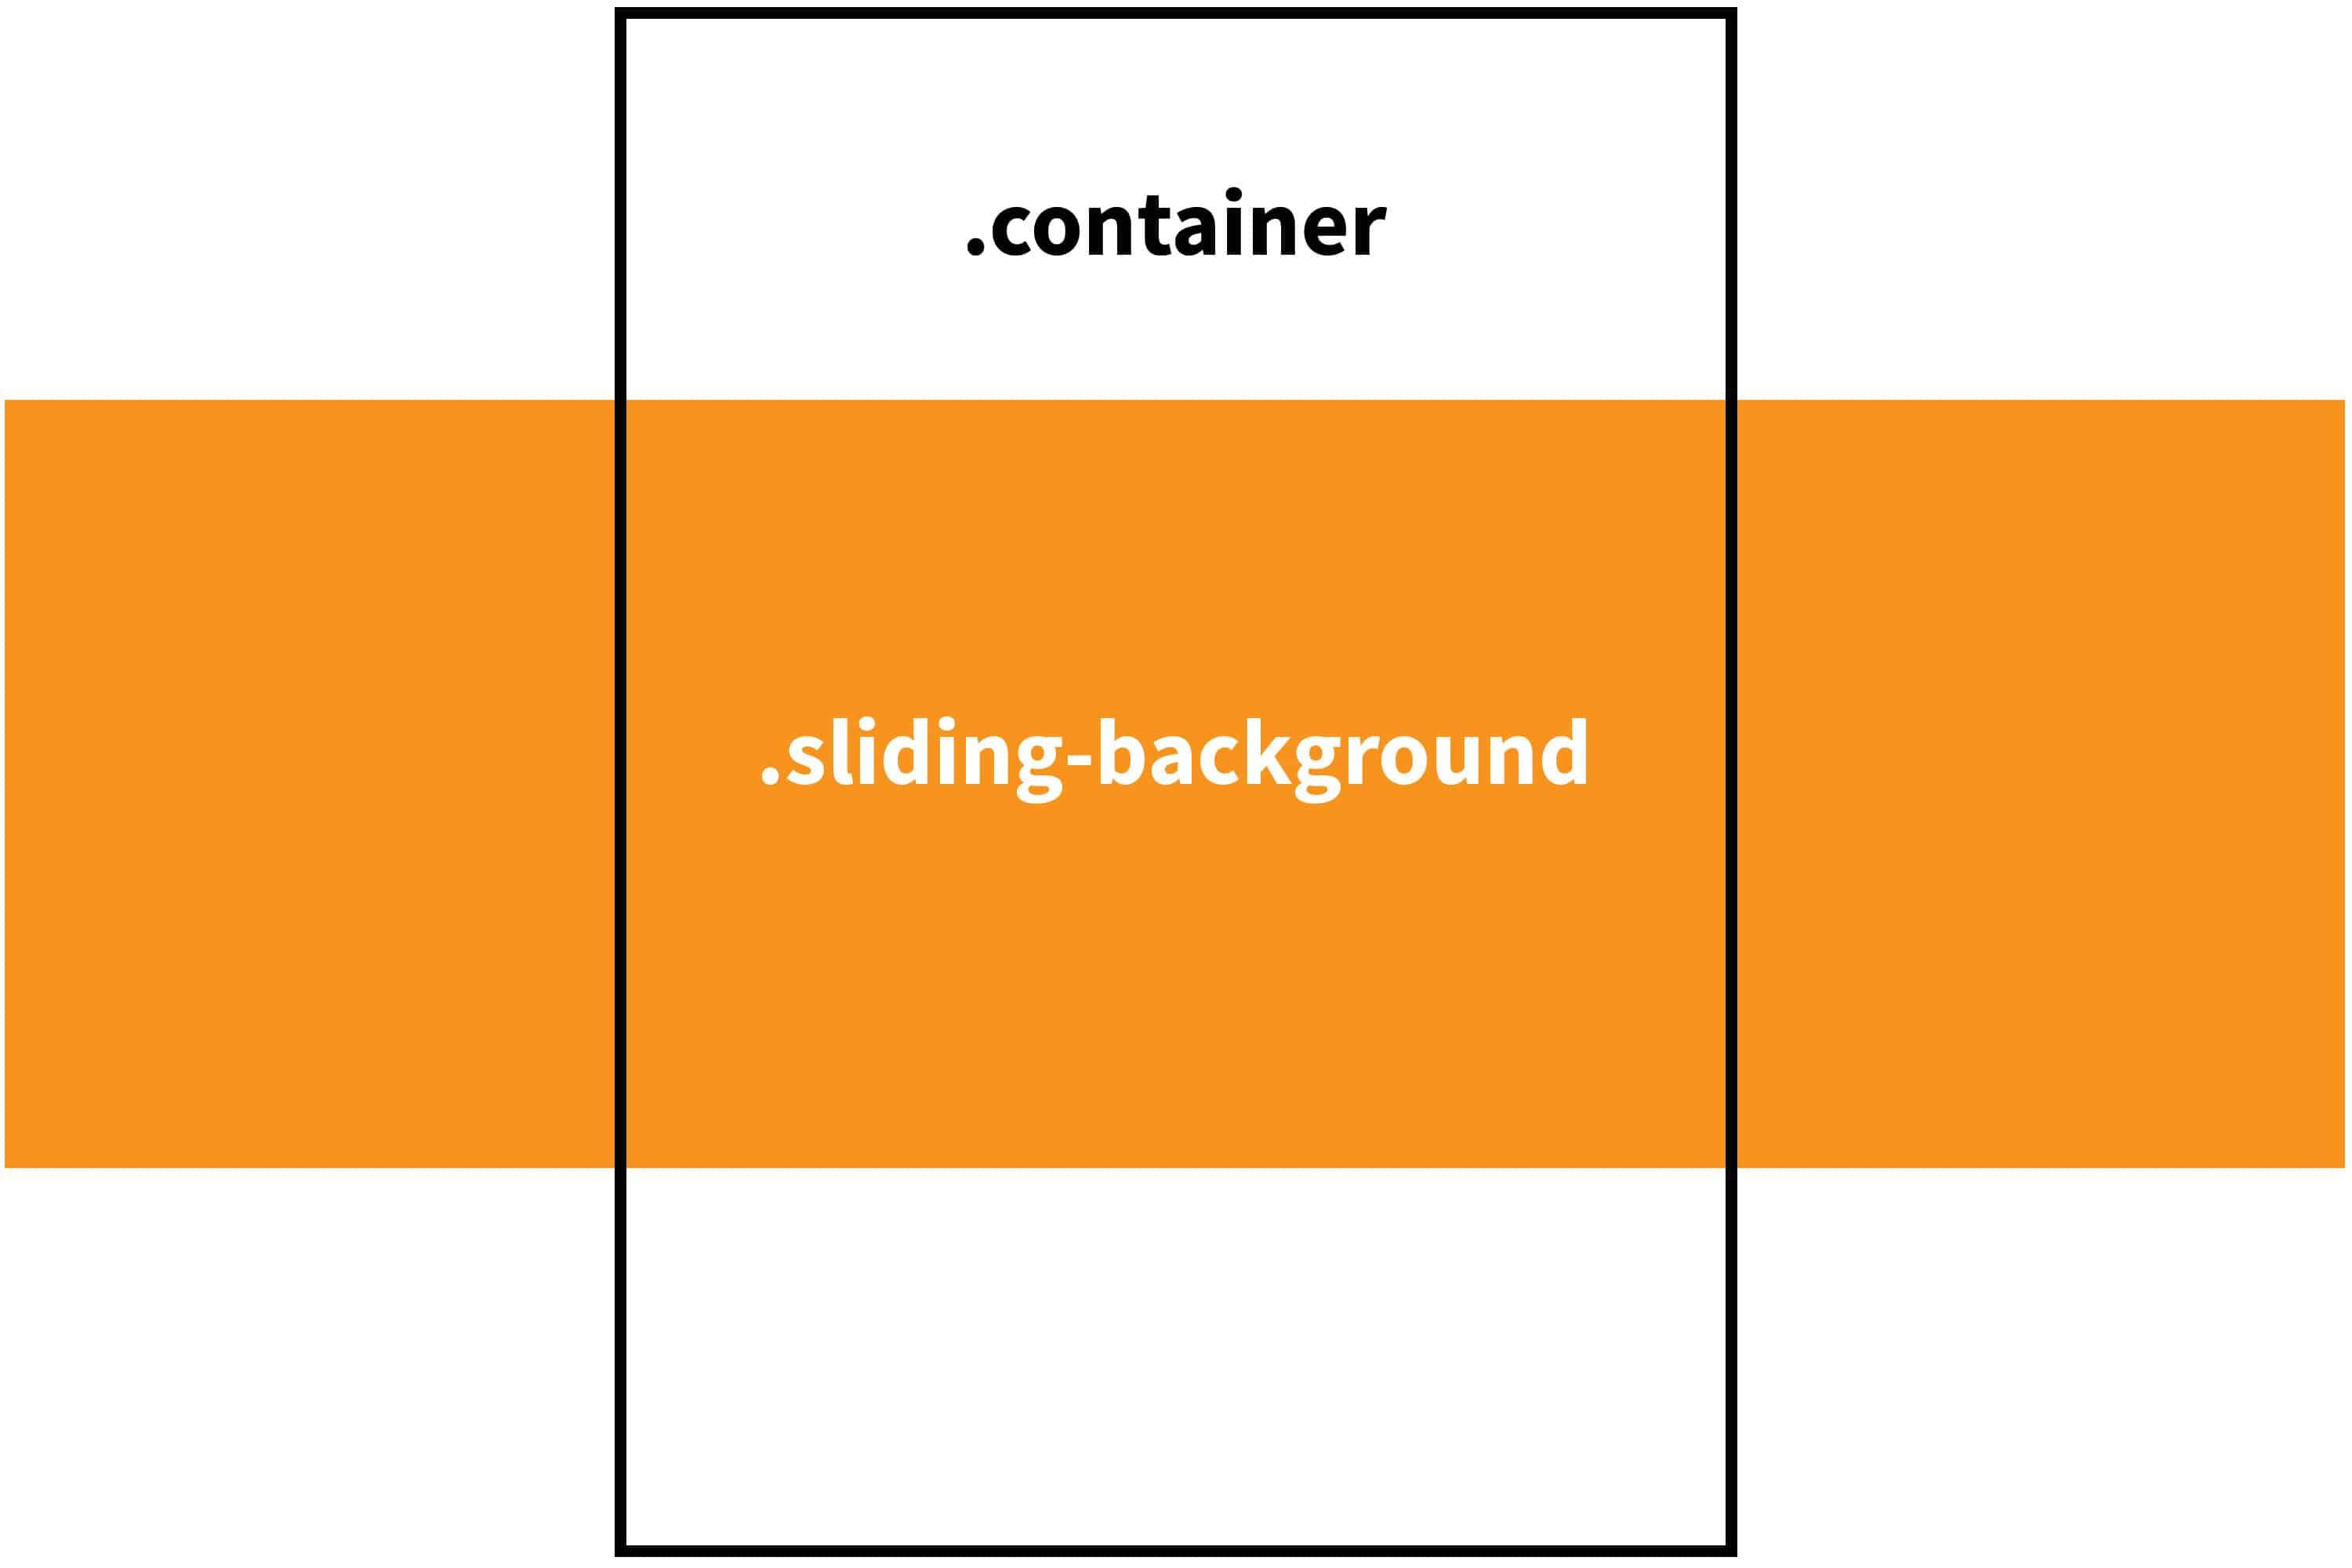 Infinite scrolling background image css tricks working with the one were calling ntainer that fits the exact width of the viewport and another were calling iding background that sits behind malvernweather Images